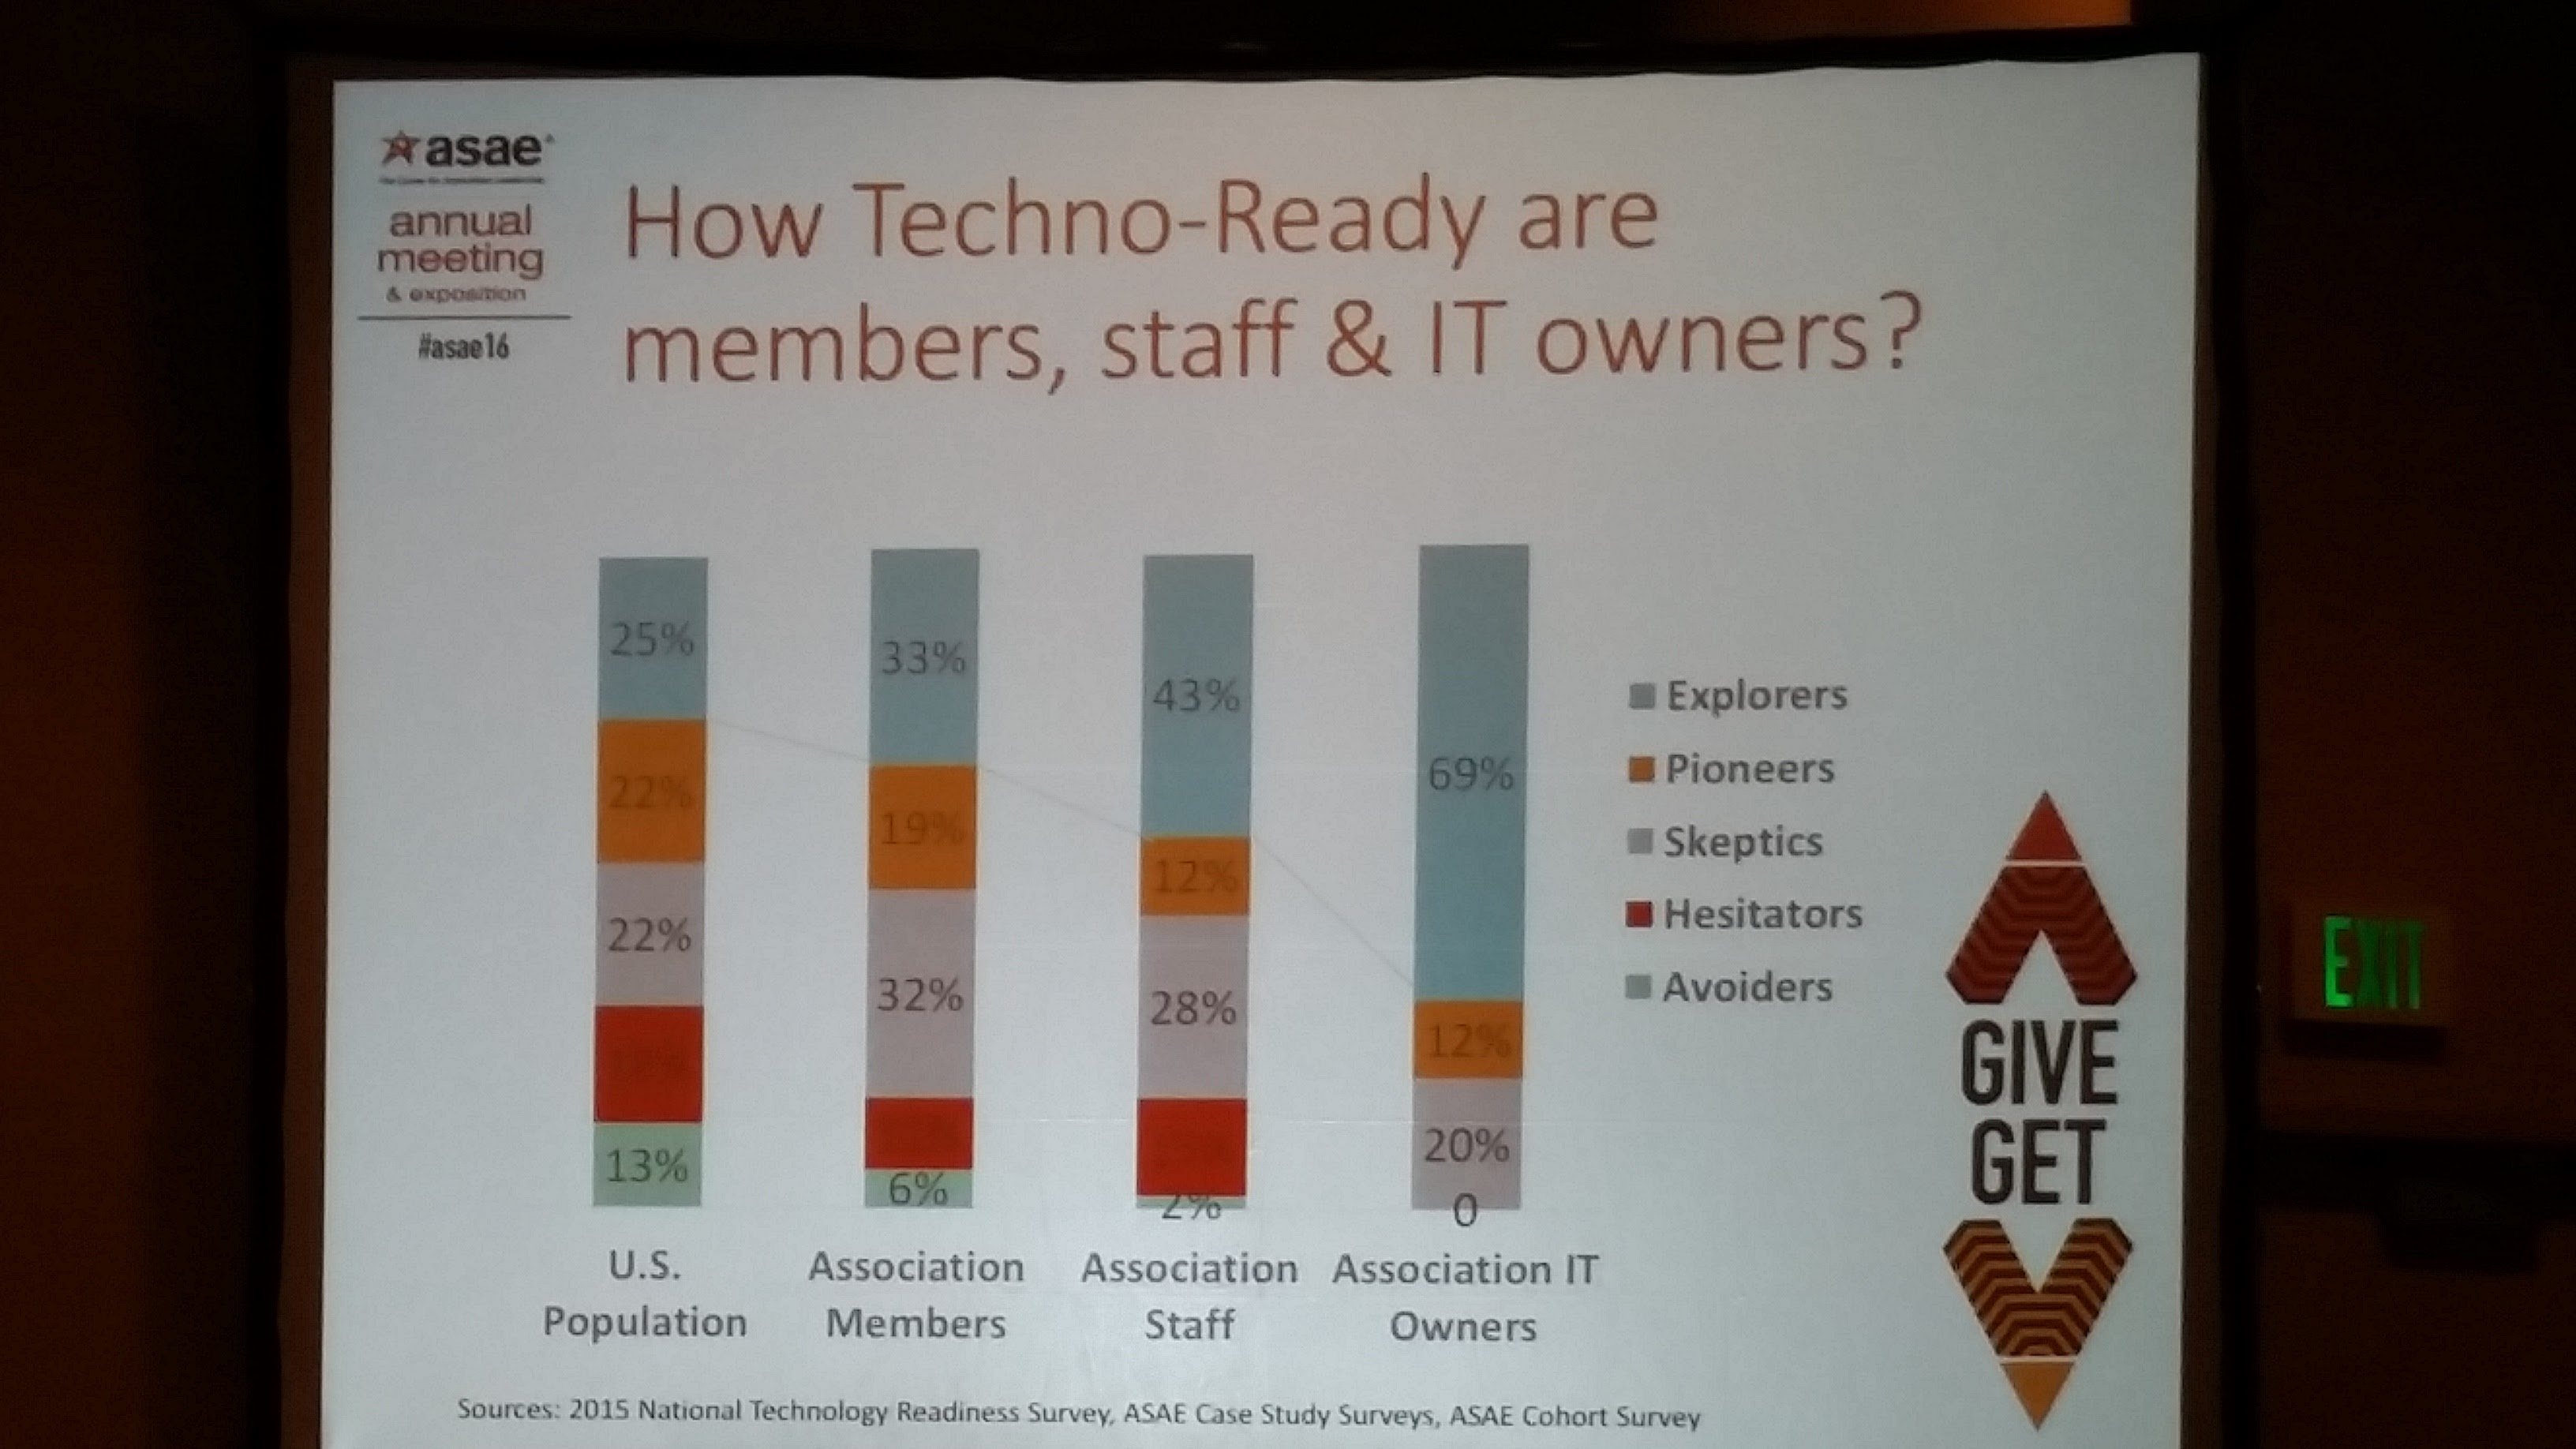 Are associations tech-ready? The data doesn't lie.